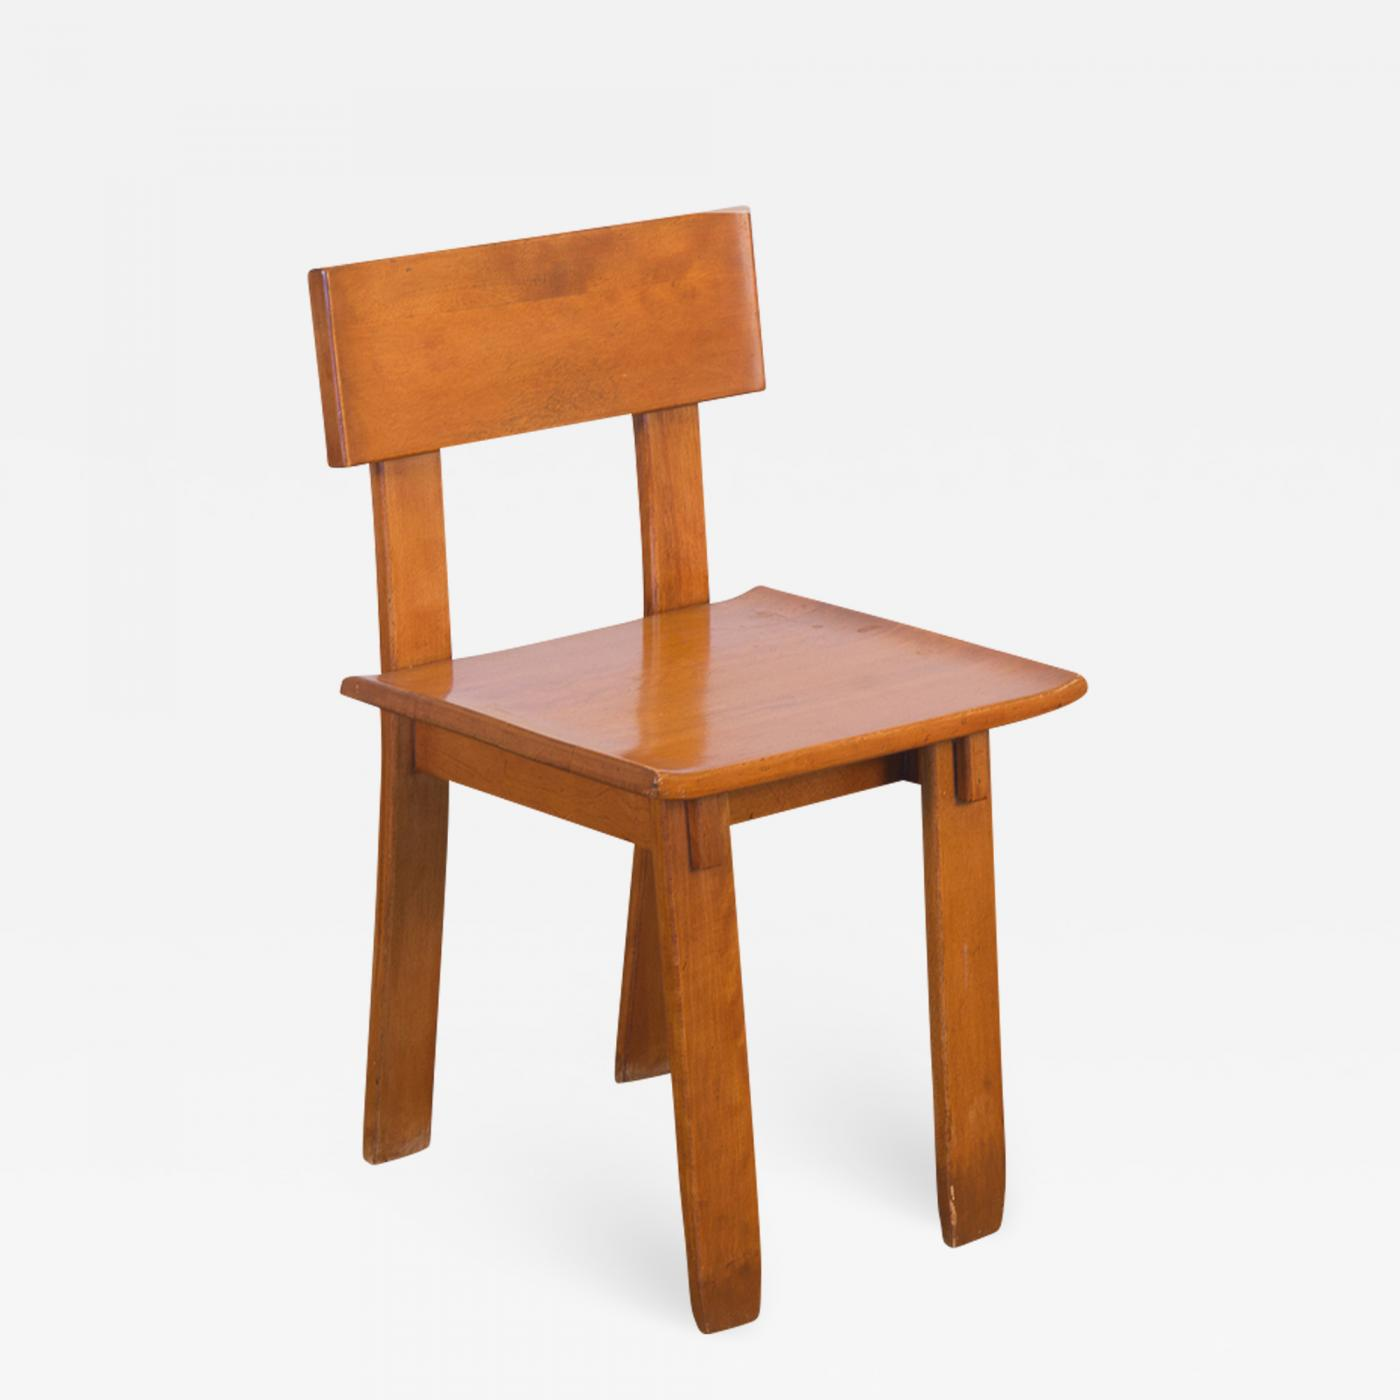 Fabulous Russel Wright 1935 Russel Wright American Modern Side Chair Download Free Architecture Designs Itiscsunscenecom